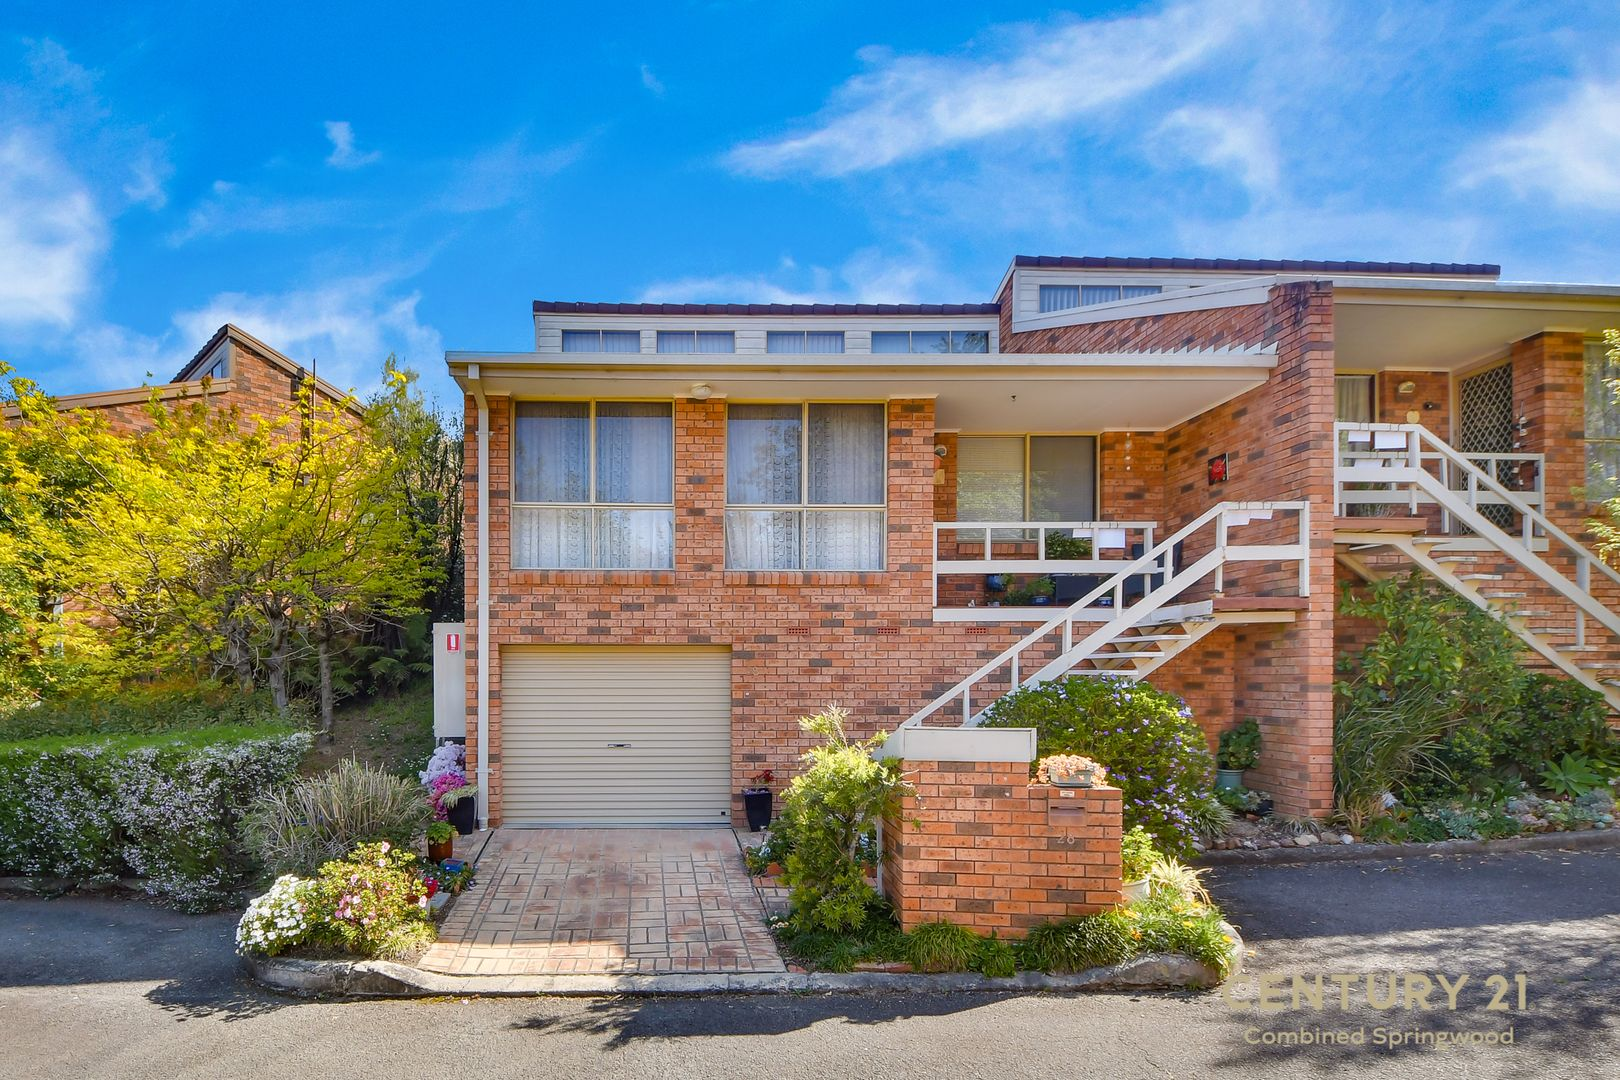 28/2 Valley Rd, Springwood NSW 2777, Image 0